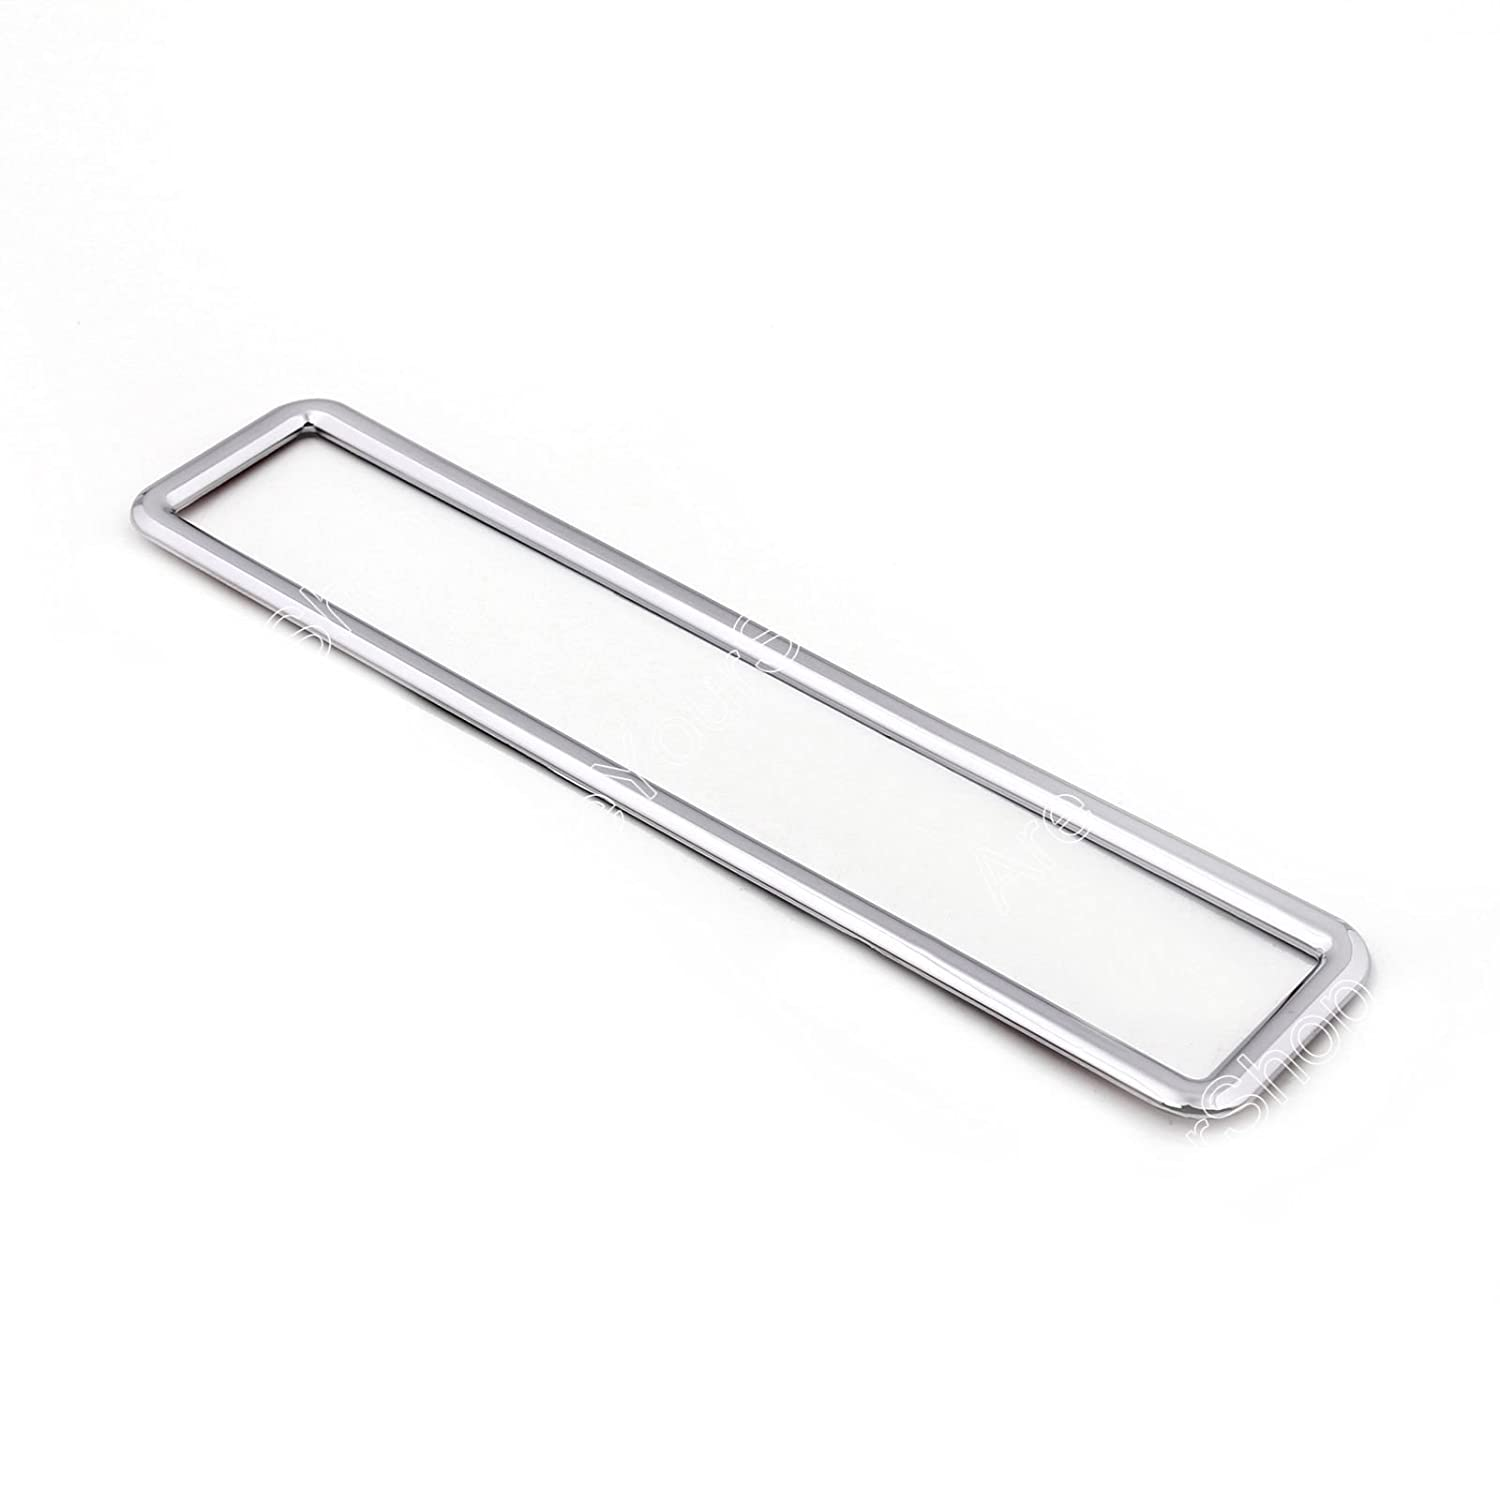 buy ast works chrome emergency light switch cover frame trim for  buy ast works chrome emergency light switch cover frame trim for jeep wrangler 2011 2015 bs5 online at low prices in india amazon in